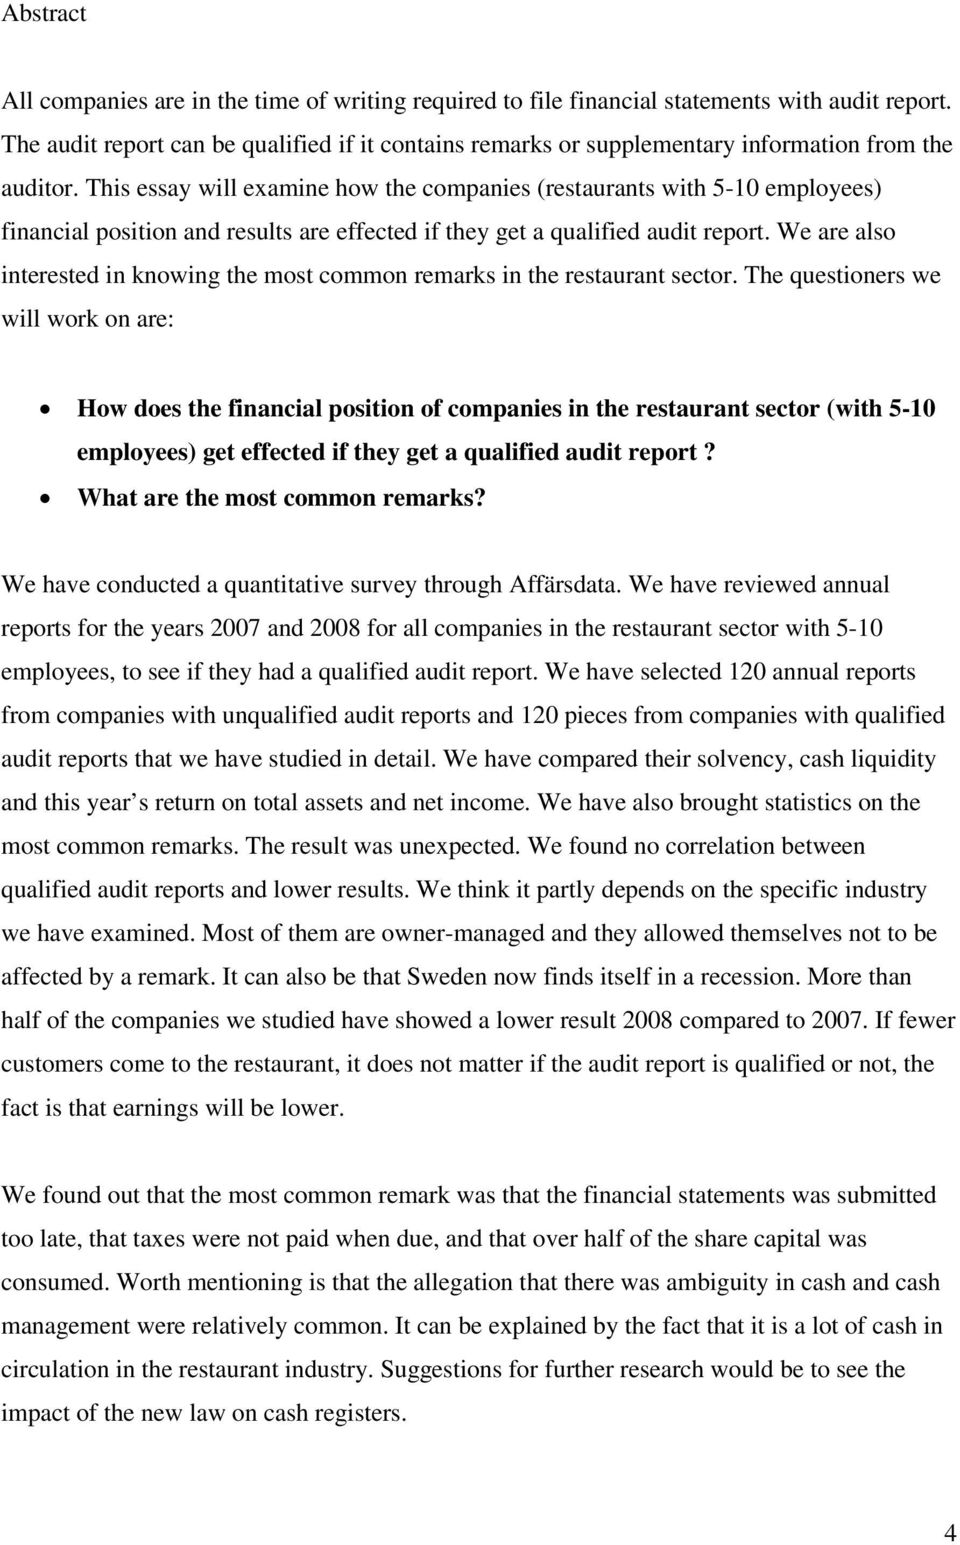 This essay will examine how the companies (restaurants with 5-10 employees) financial position and results are effected if they get a qualified audit report.